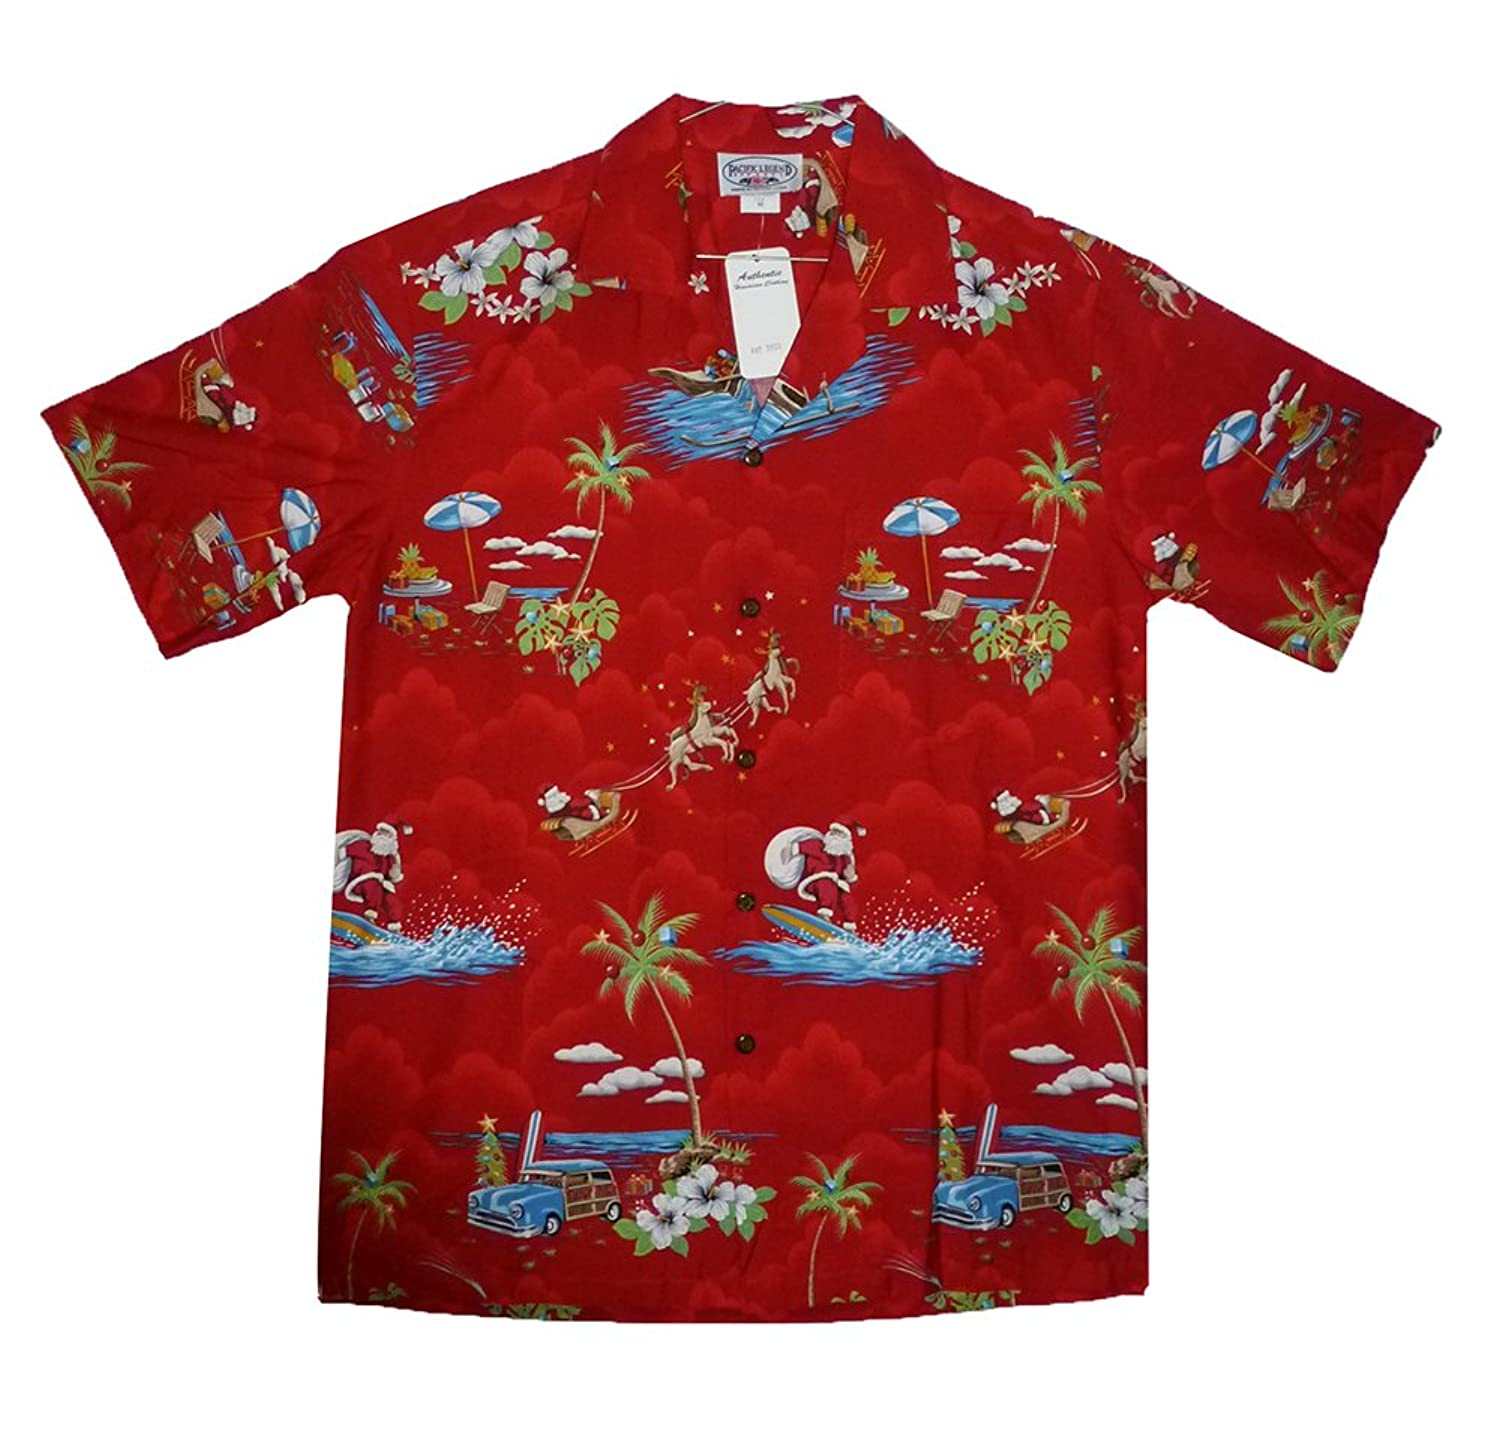 Pacific Legend | Original Hawaiian Shirt | For Men | S - 4XL | Short-Sleeve | Front-Pocket | Hawaiian-Print | Christmas Santa | Red